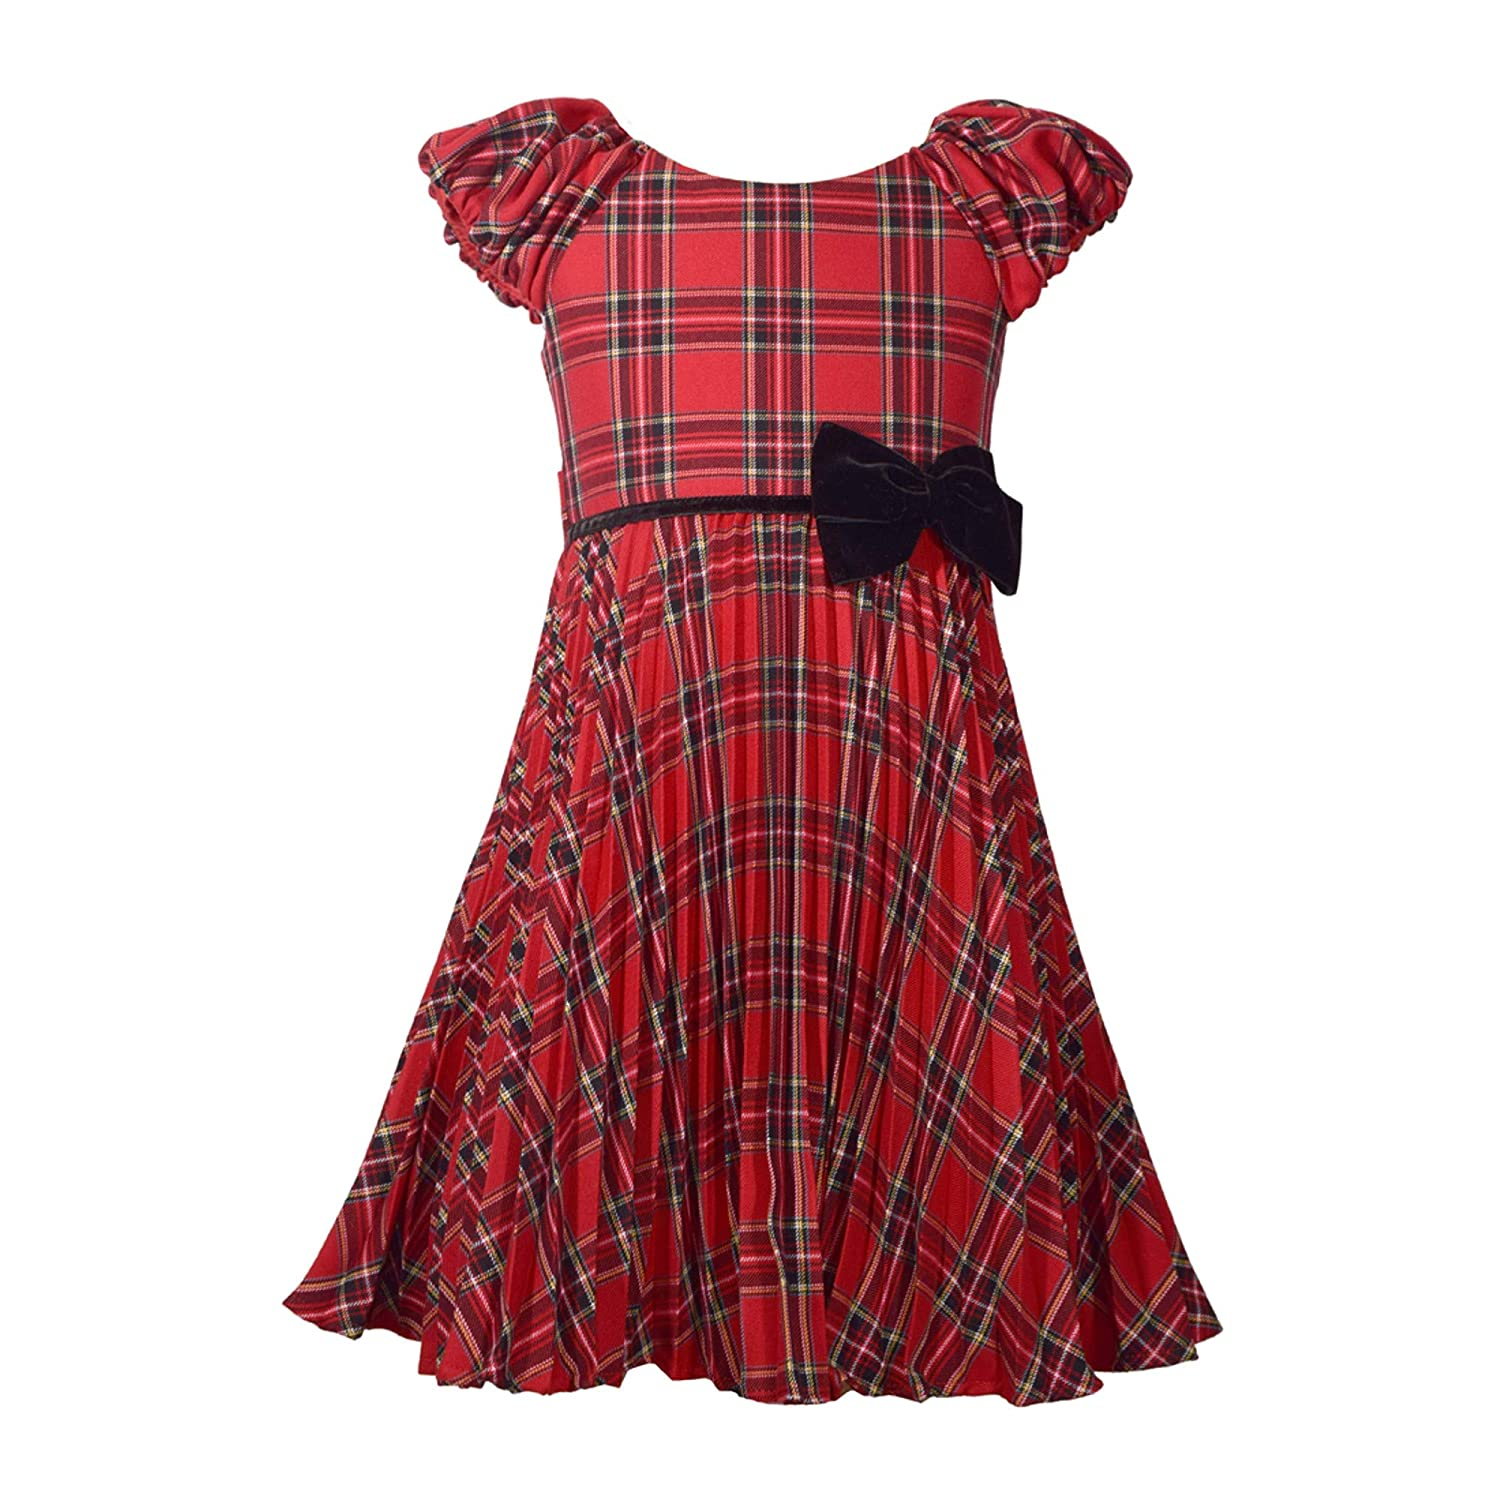 Kids 1950s Clothing & Costumes: Girls, Boys, Toddlers Bonnie Jean Red Plaid Christmas Dress with Pleated Skirt and Velvet Bow $49.95 AT vintagedancer.com